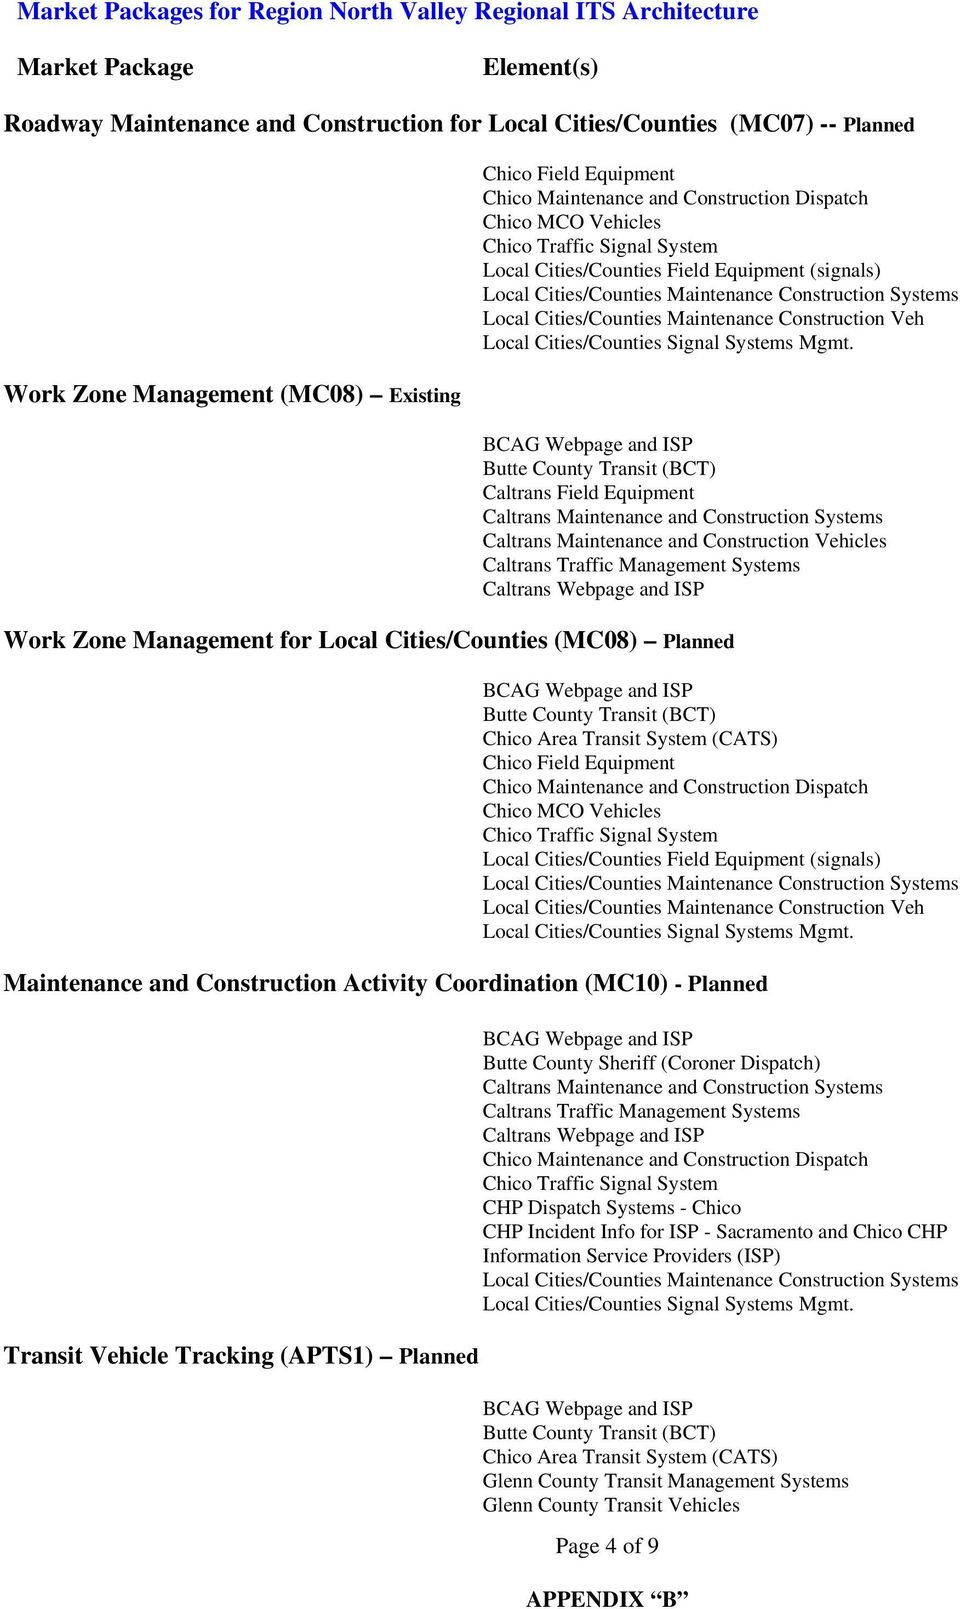 Management for Local Cities/Counties (MC08) Planned Local Cities/Counties Maintenance Construction Veh Maintenance and